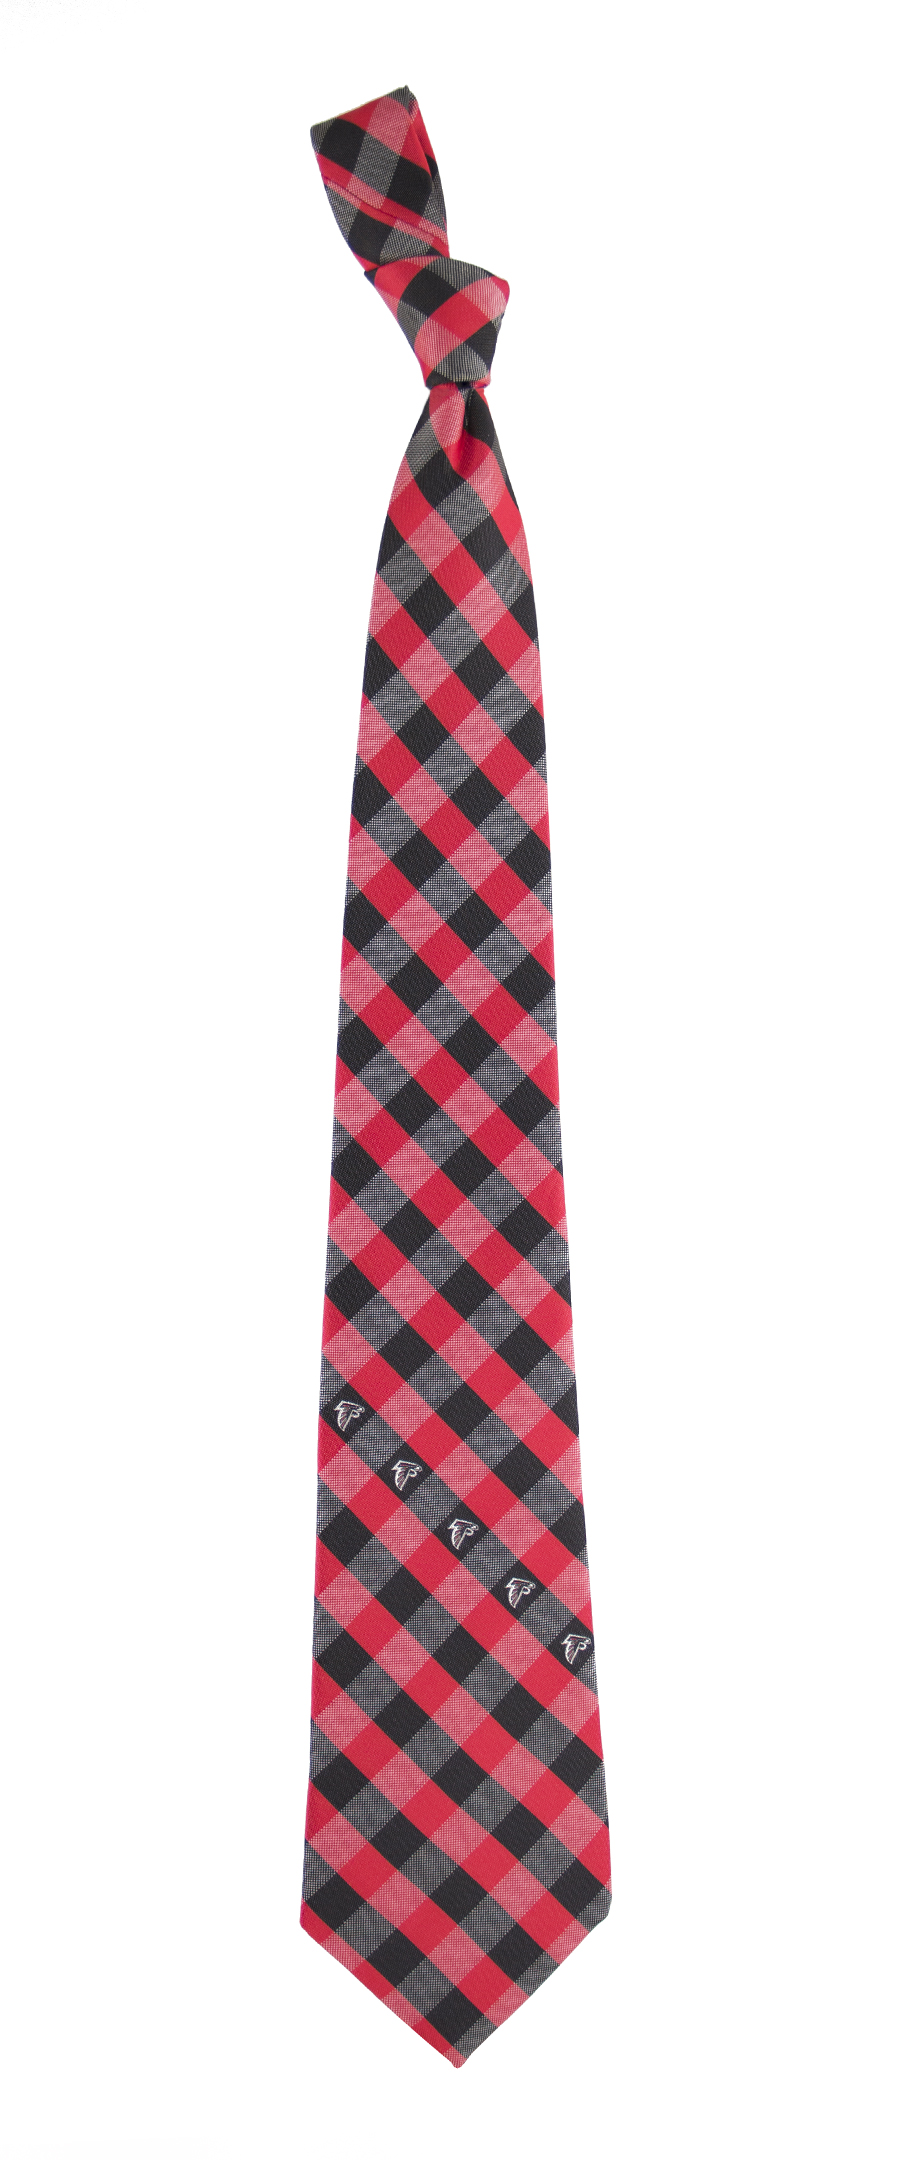 Atlanta Falcons ties